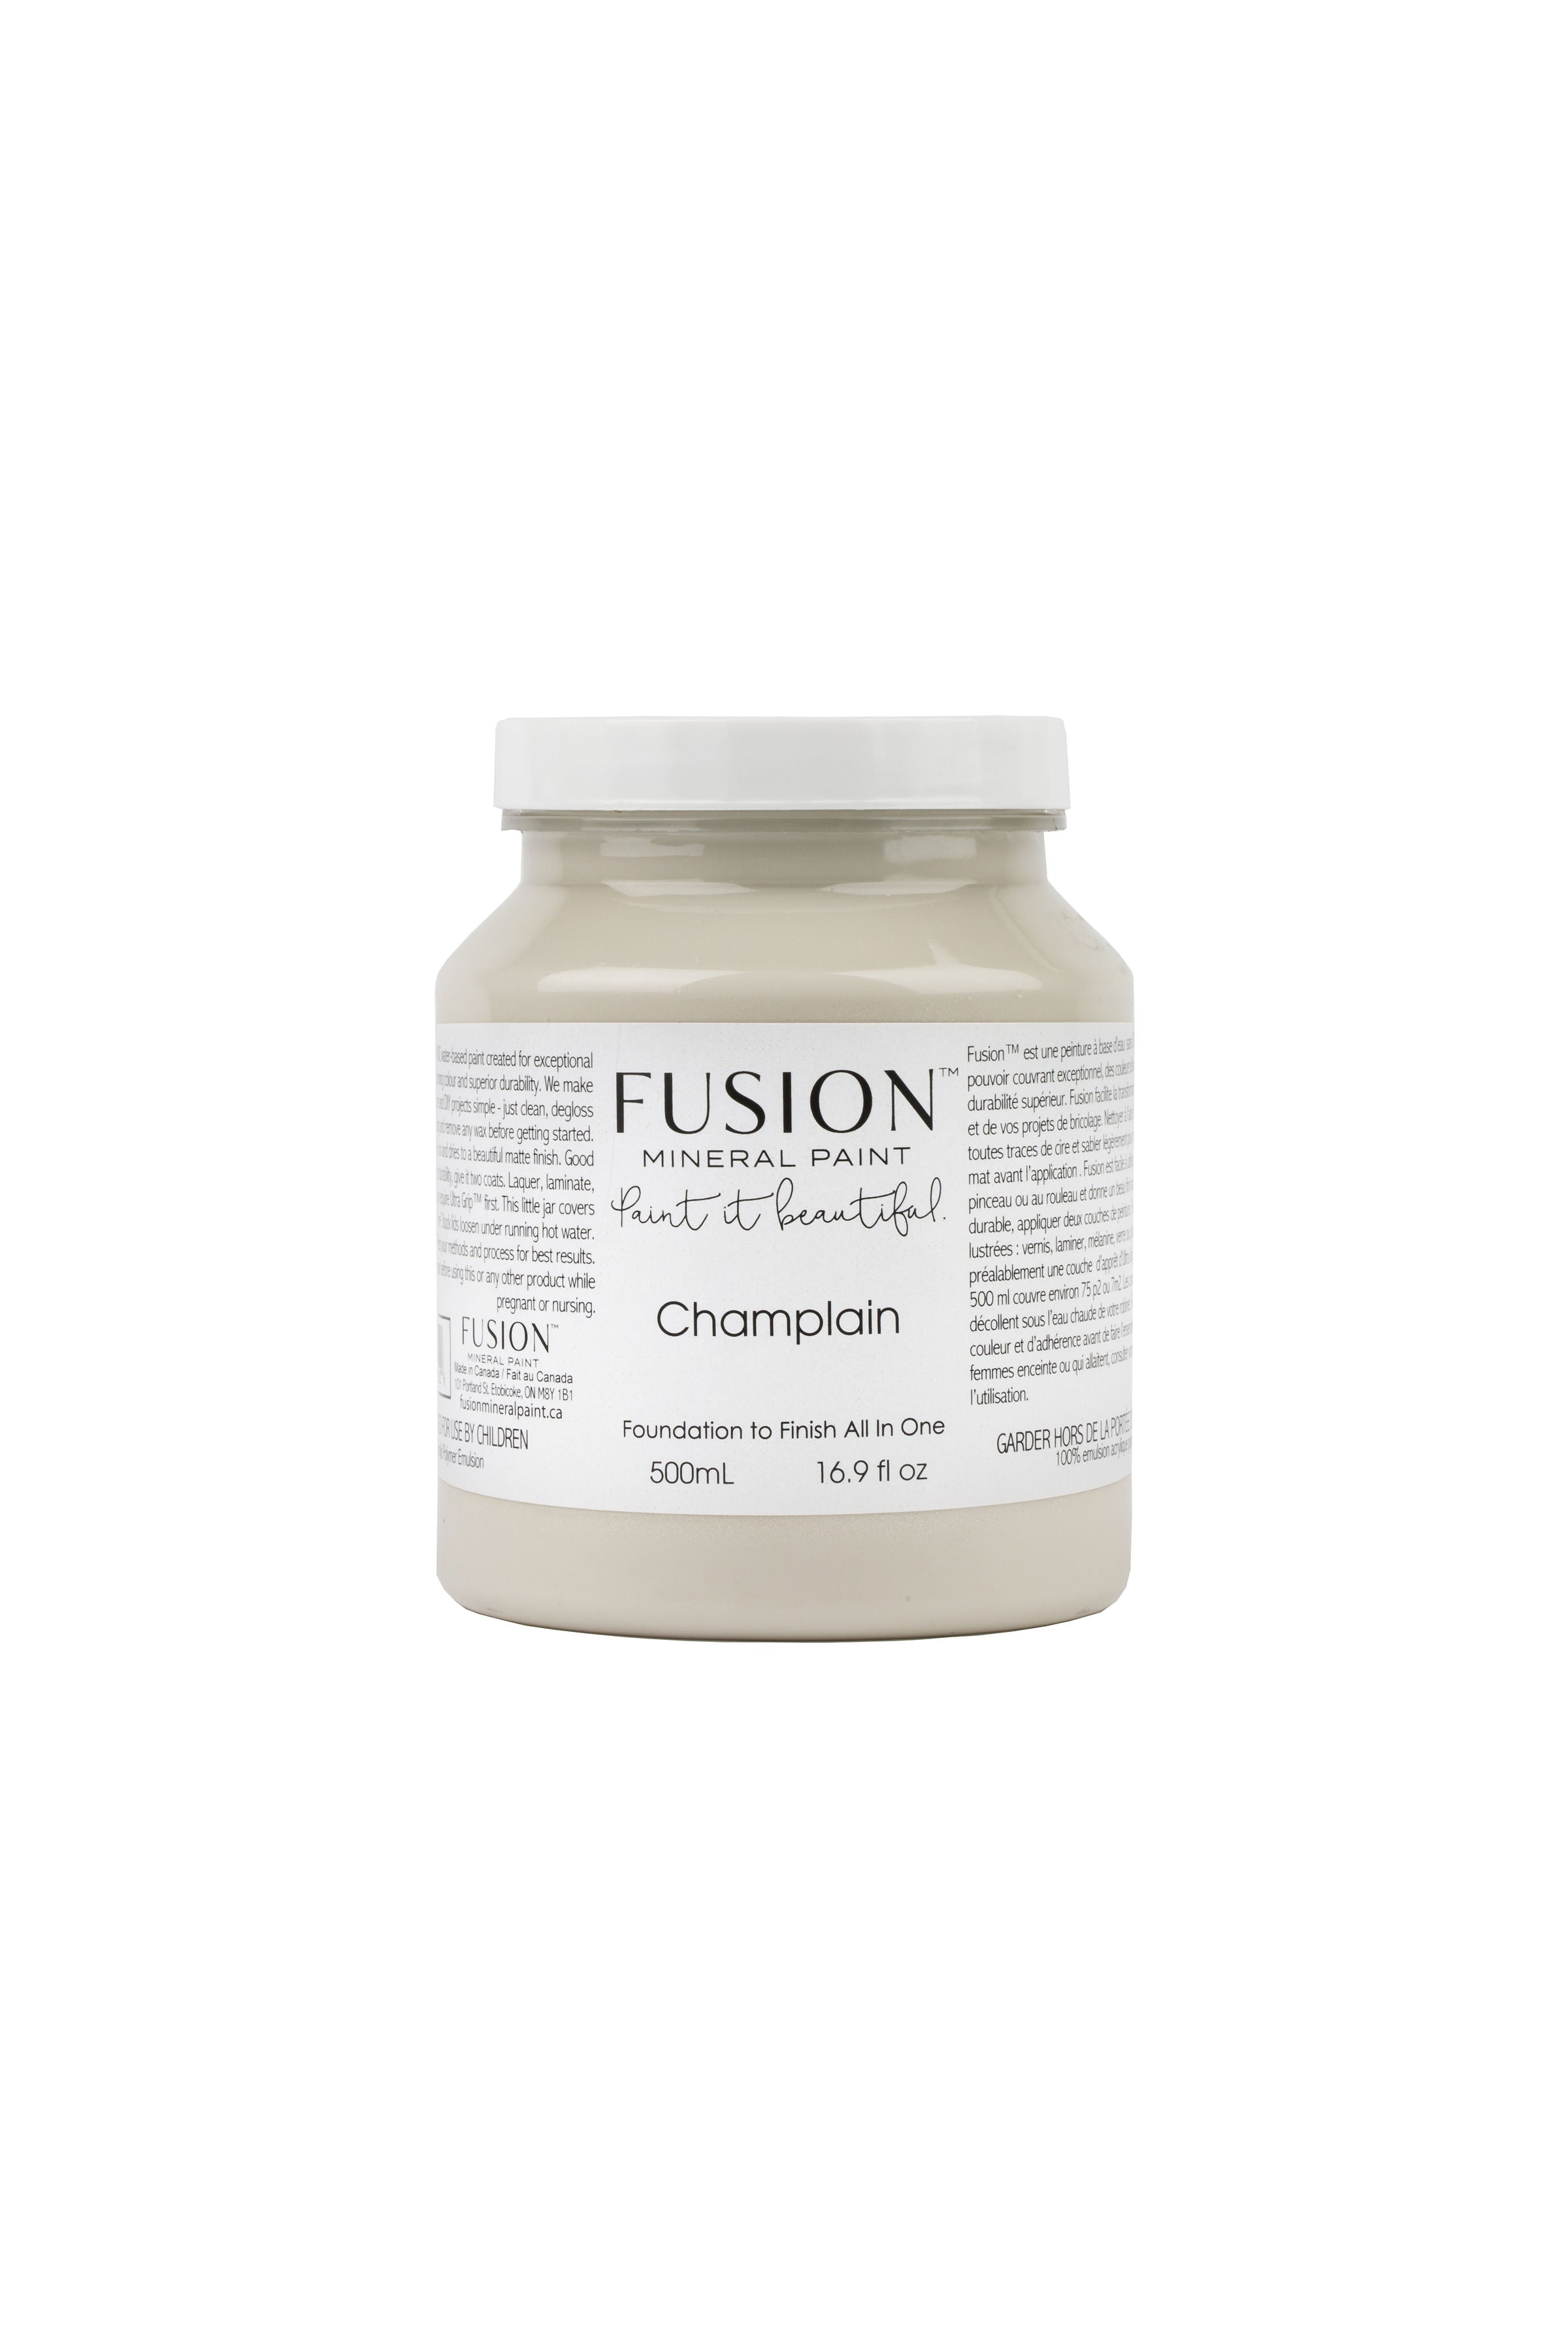 Champlain - Fusion Mineral Paint - 500ml Pint